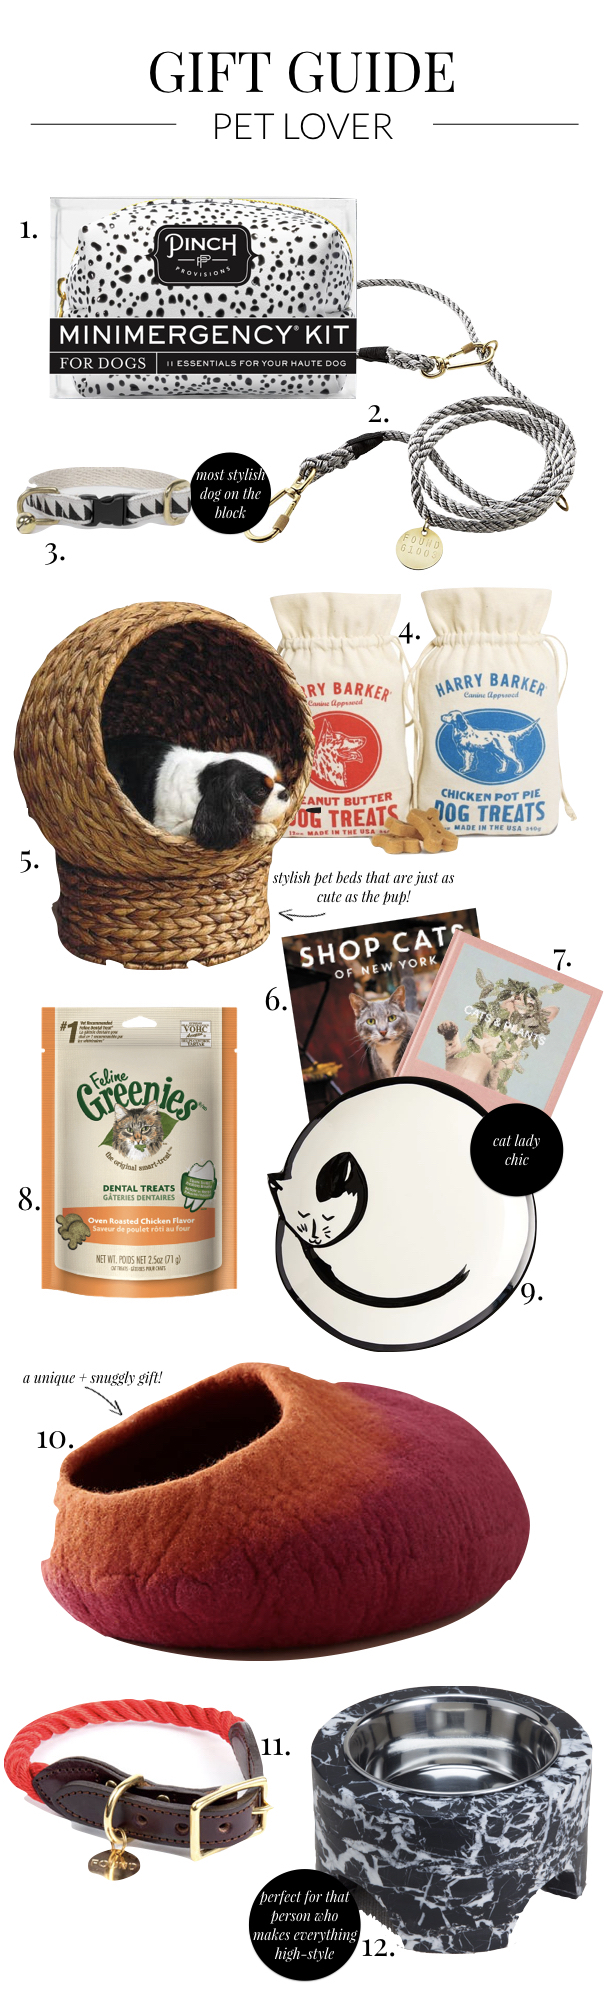 Holiday 2017 Gift Guides: Pet Lover